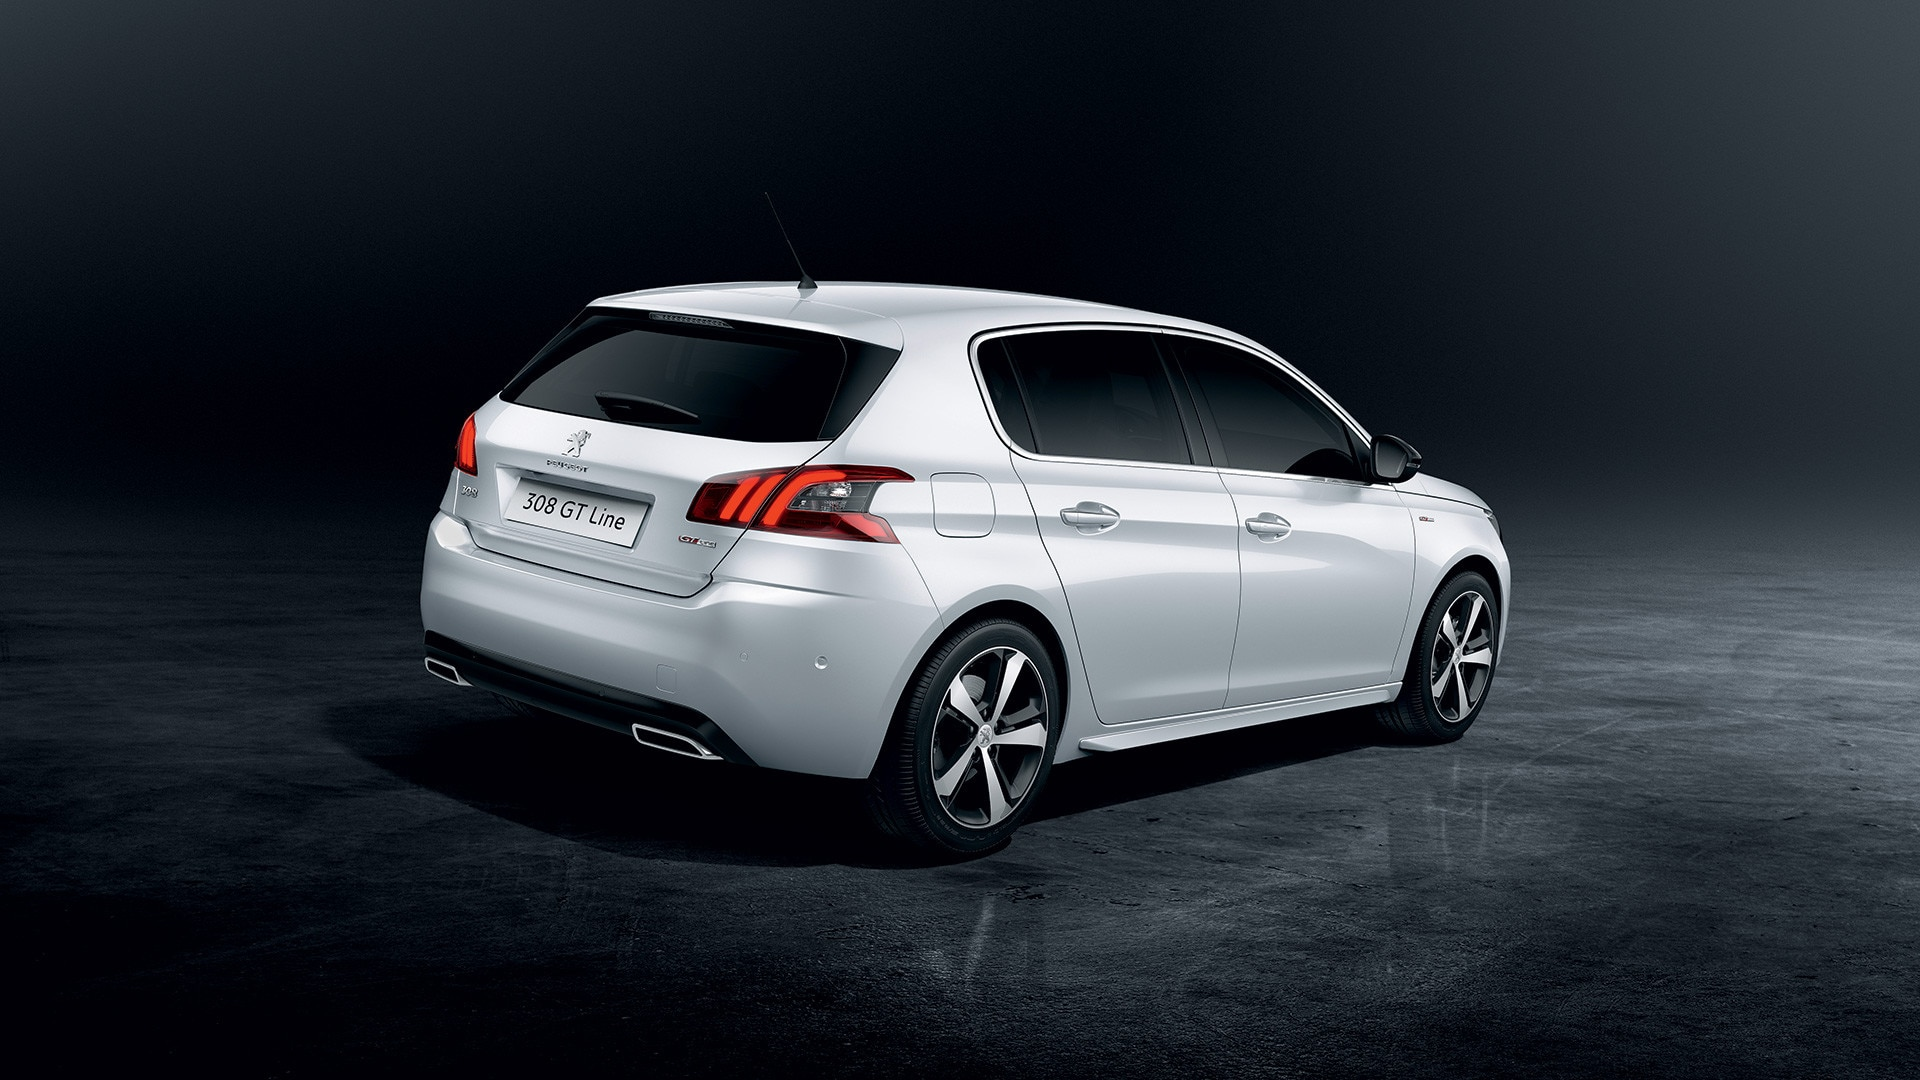 peugeot 308 showroom gt line test drive today. Black Bedroom Furniture Sets. Home Design Ideas